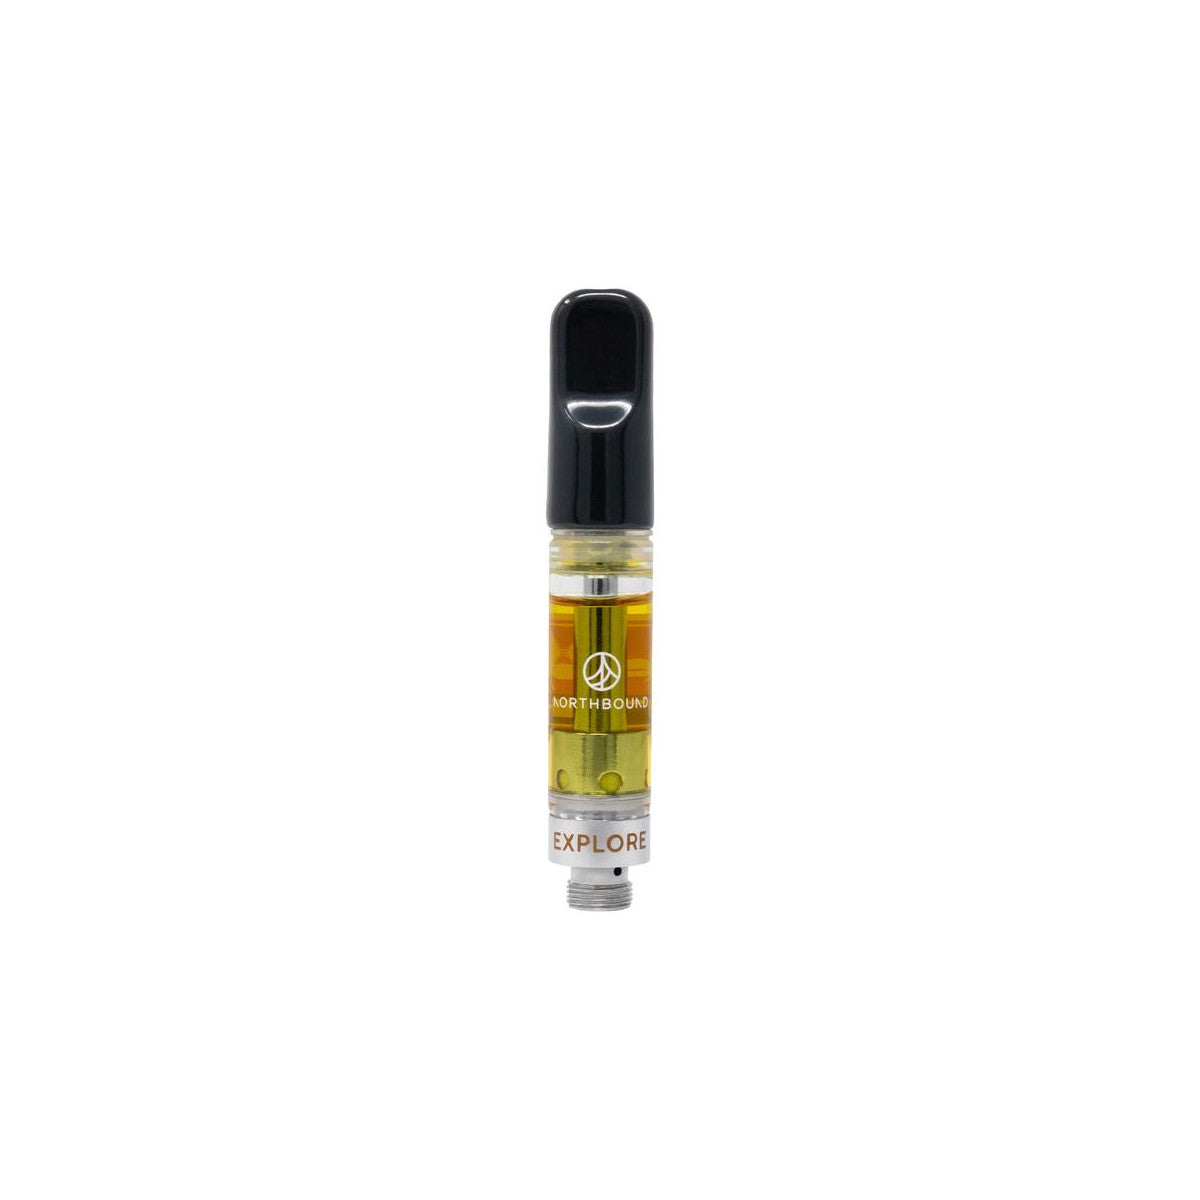 510 thread vape cartridge containing gold coloured concentrate and black mouthpiece on a white background.